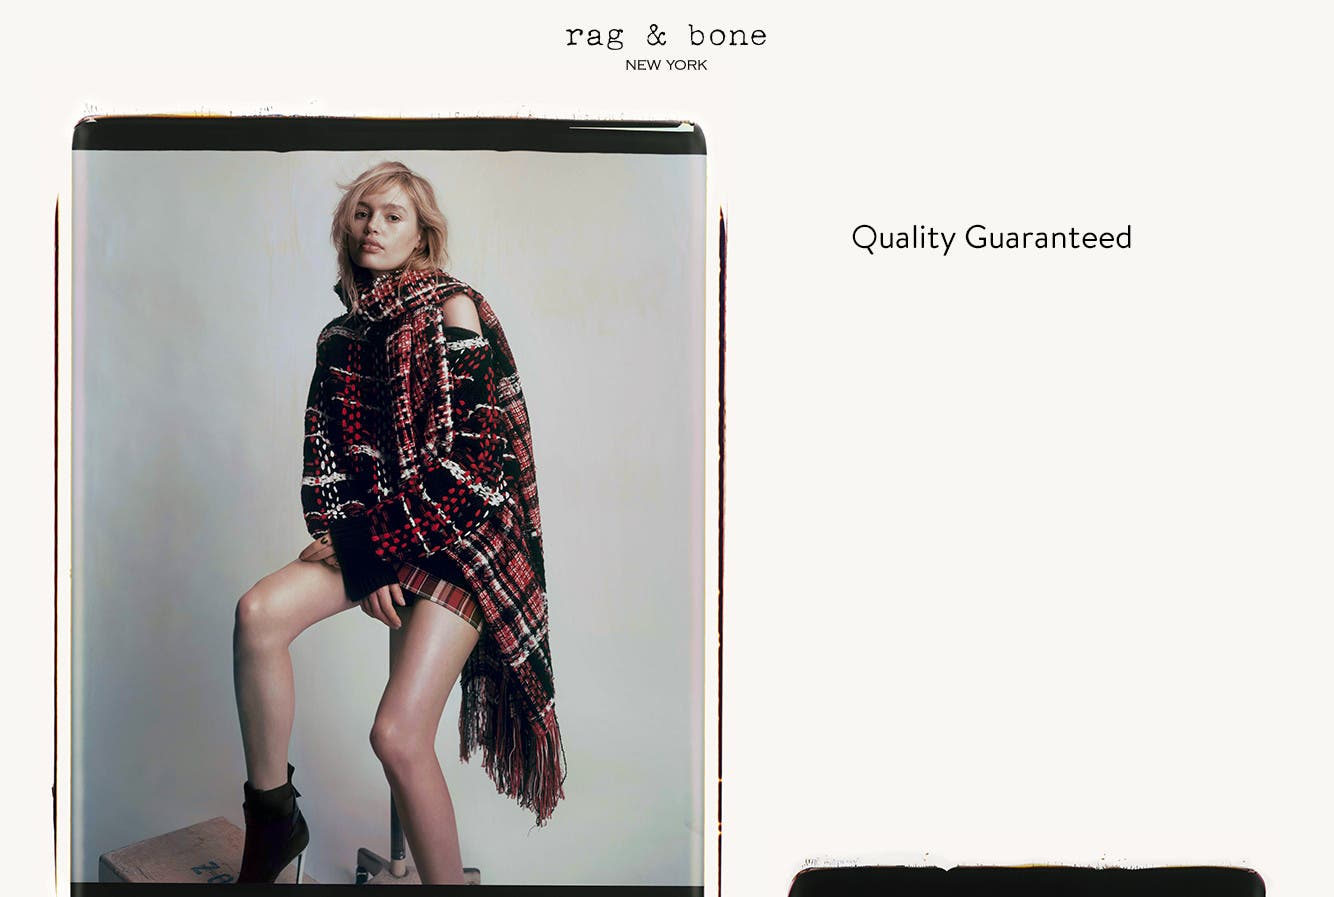 rag & bone clothing, shoes, handbags and accessories: quality guaranteed.